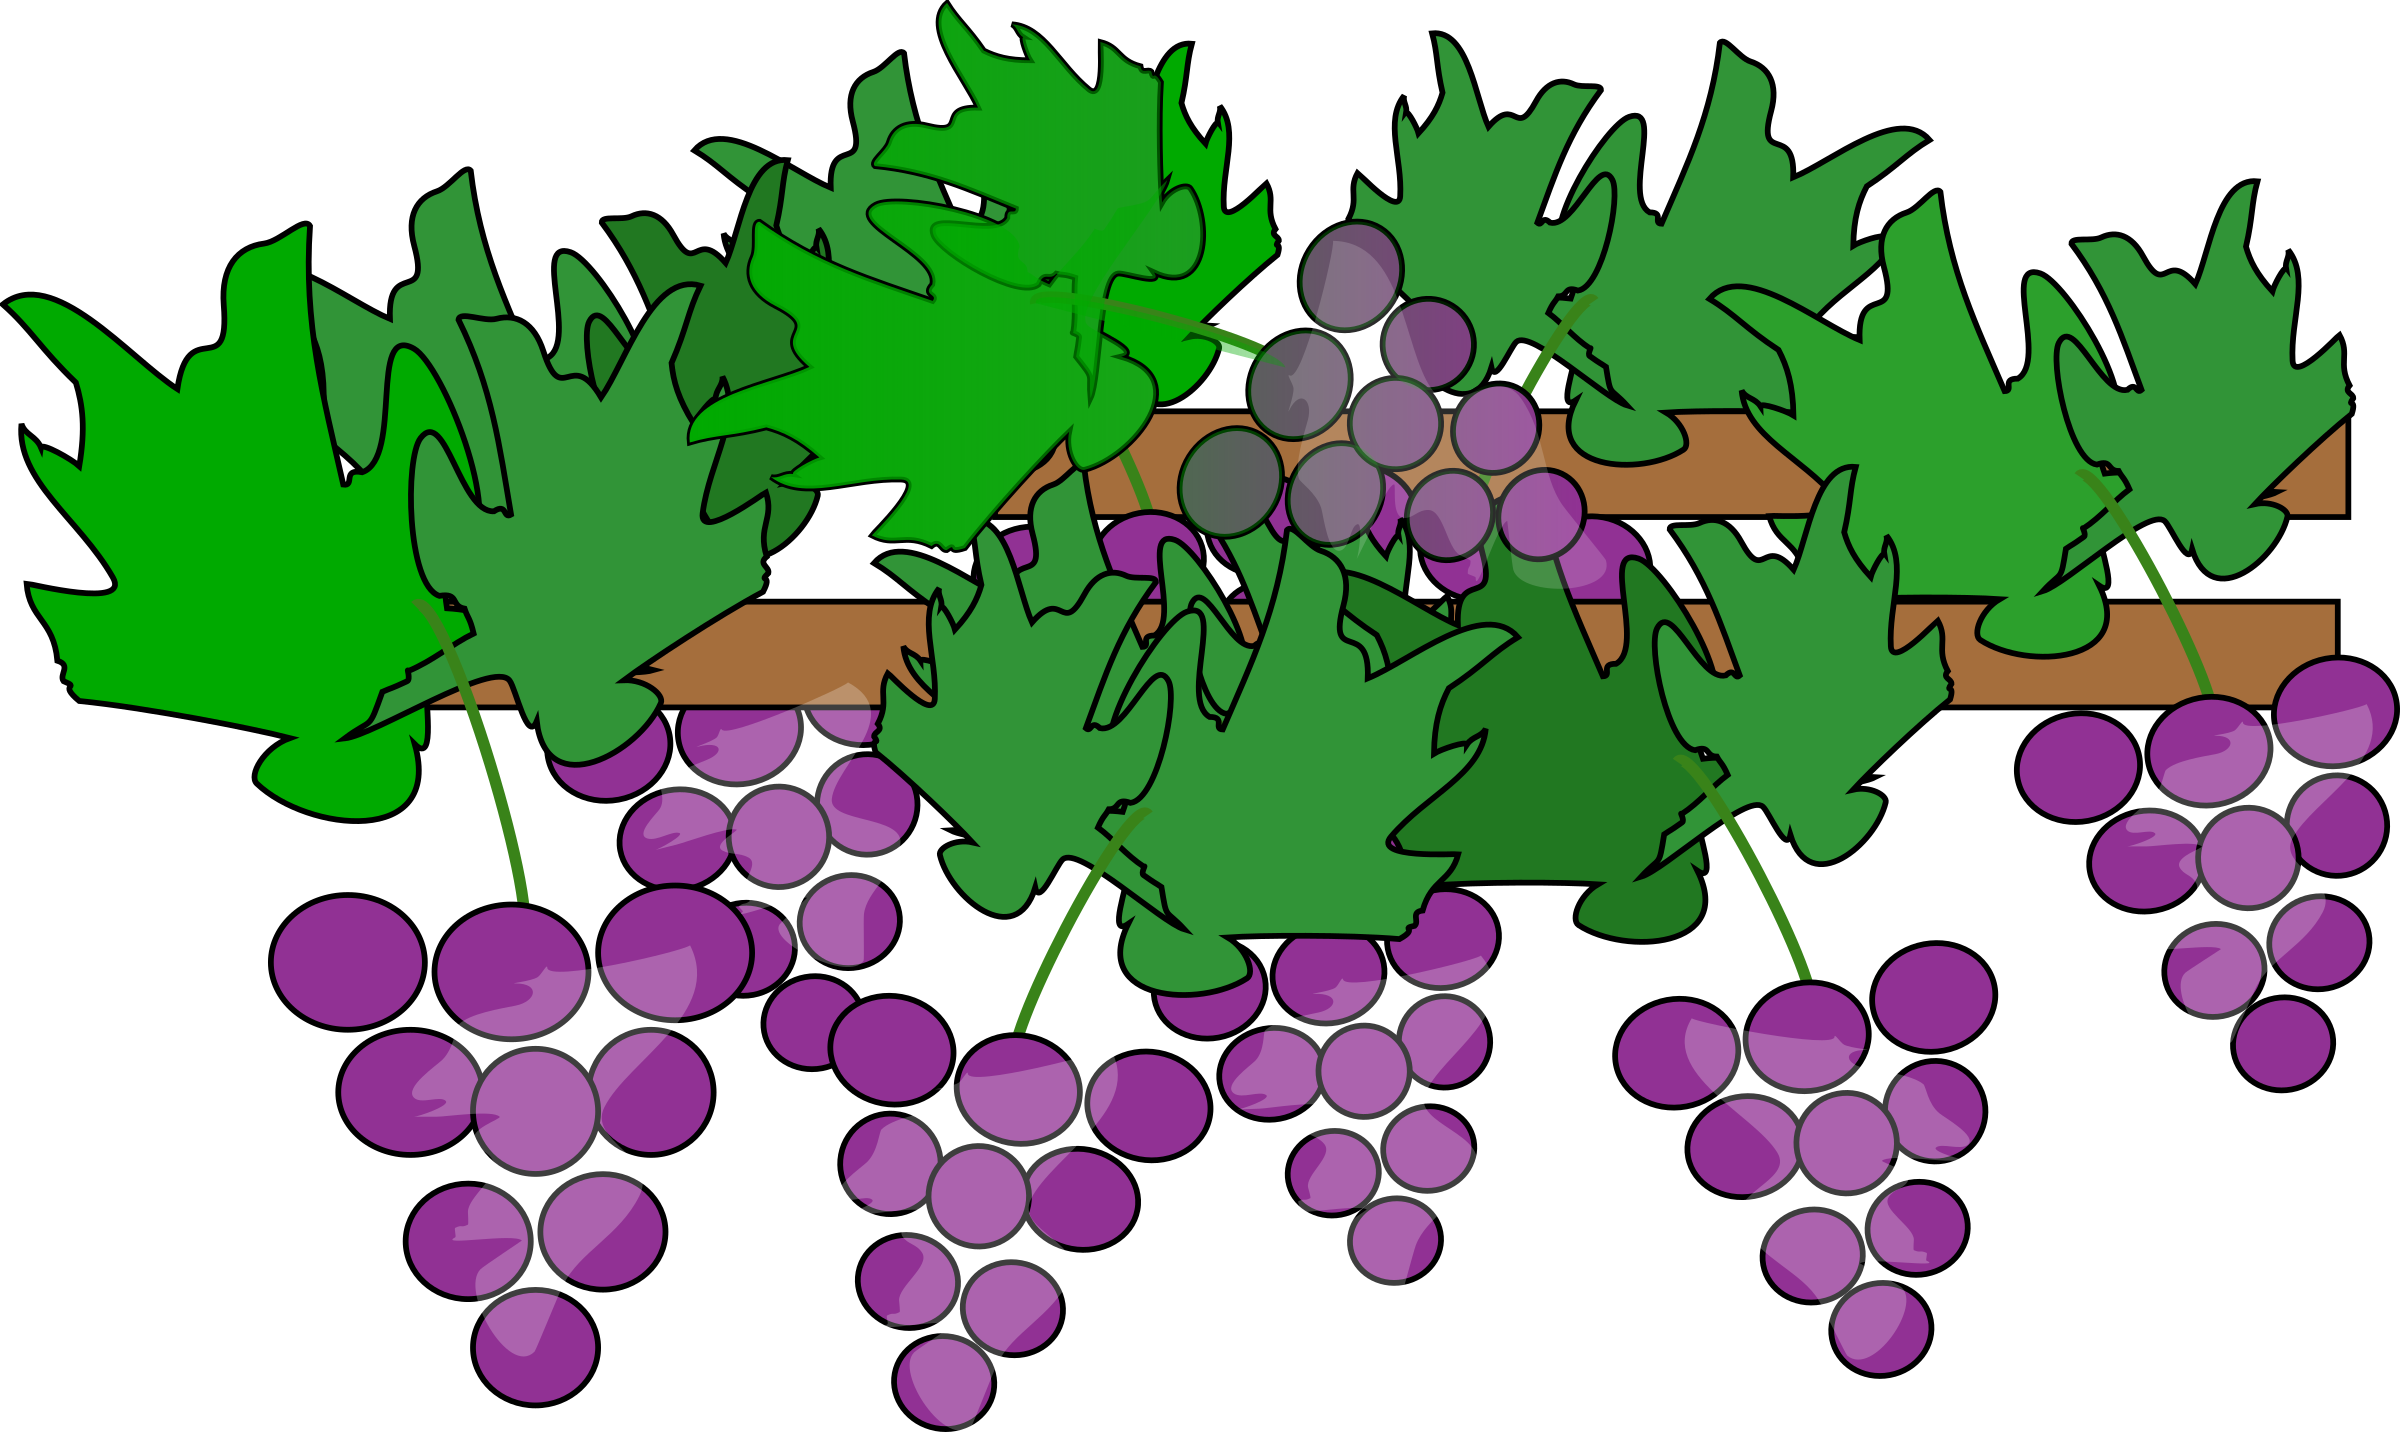 Grapes Growing for Wine by dinhochiz